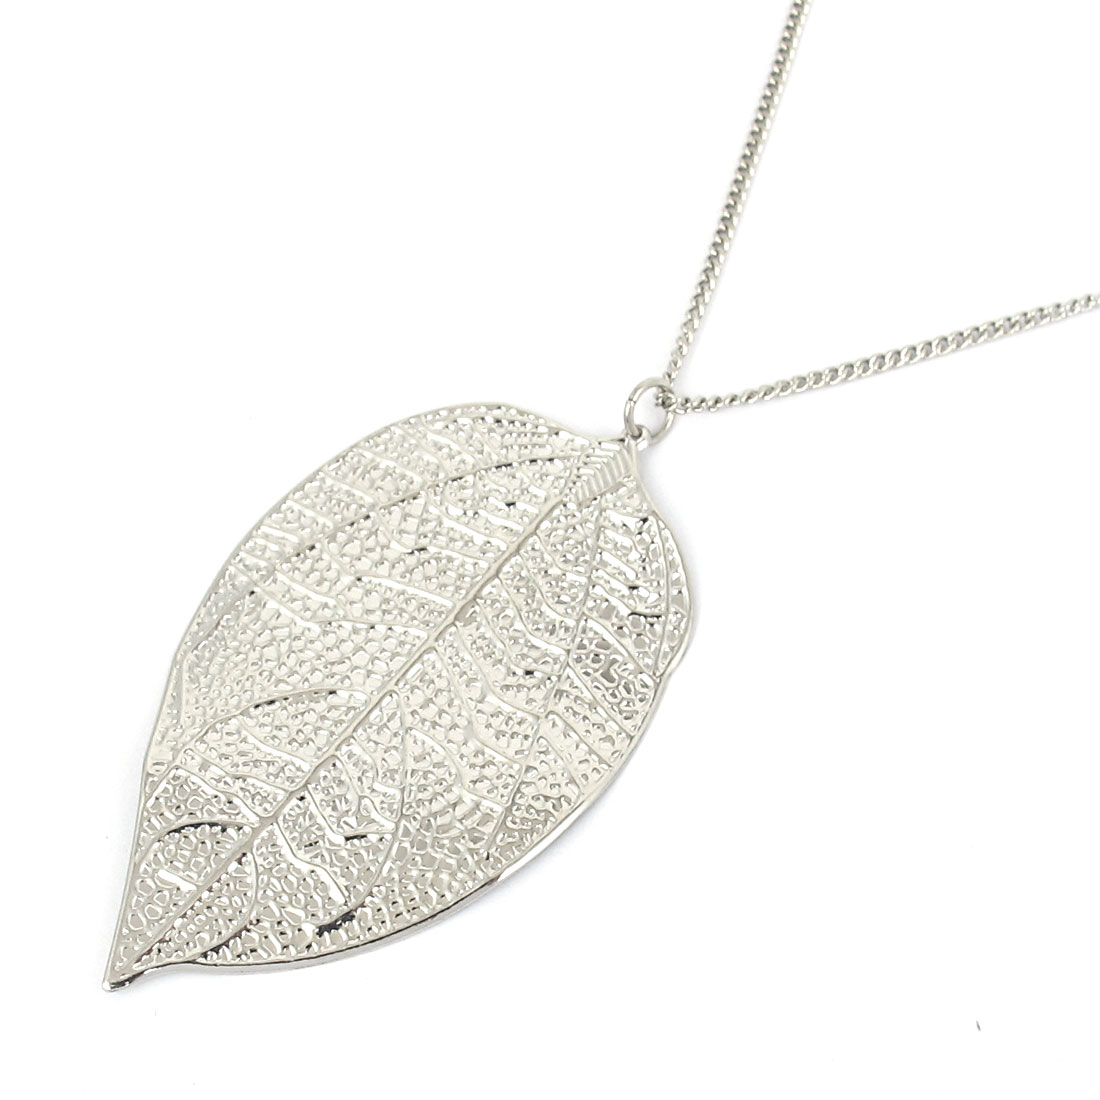 Ladies Women Metal Leaf Design Pendant Lobster Buckle Strip Link Slim Chain Necklace Neckwear Collar for Silver Tone